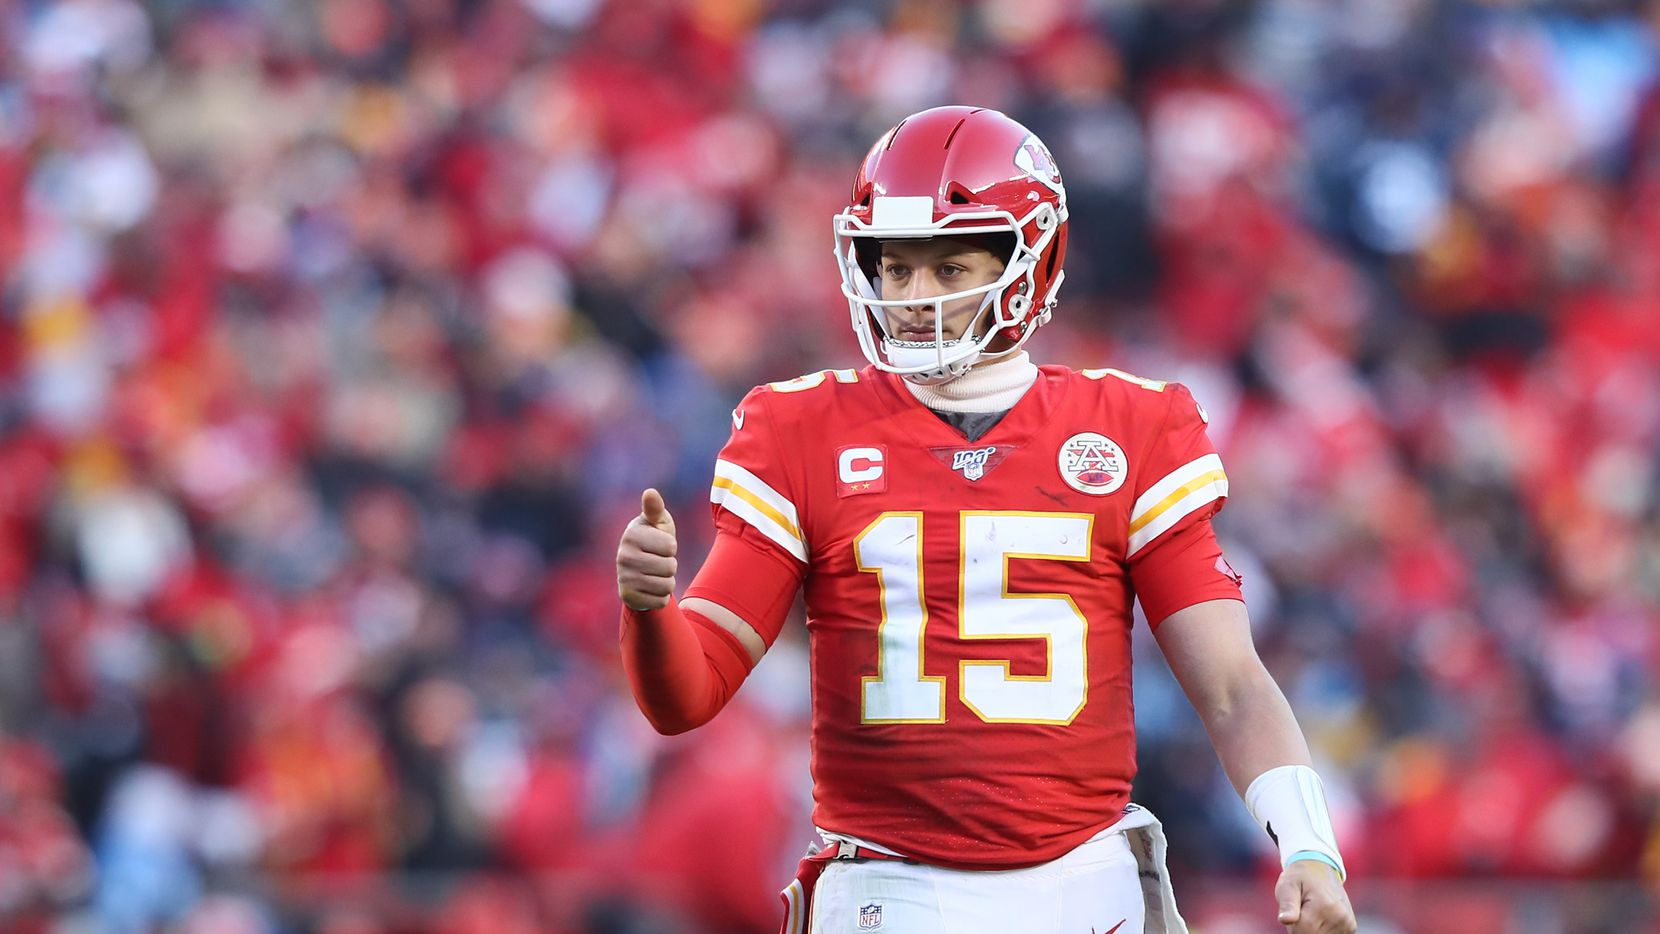 KANSAS CITY, MISSOURI - JANUARY 19: Patrick Mahomes #15 of the Kansas City Chiefs reacts after a play in the second half against the Tennessee Titans in the AFC Championship Game at Arrowhead Stadium on January 19, 2020 in Kansas City, Missouri.